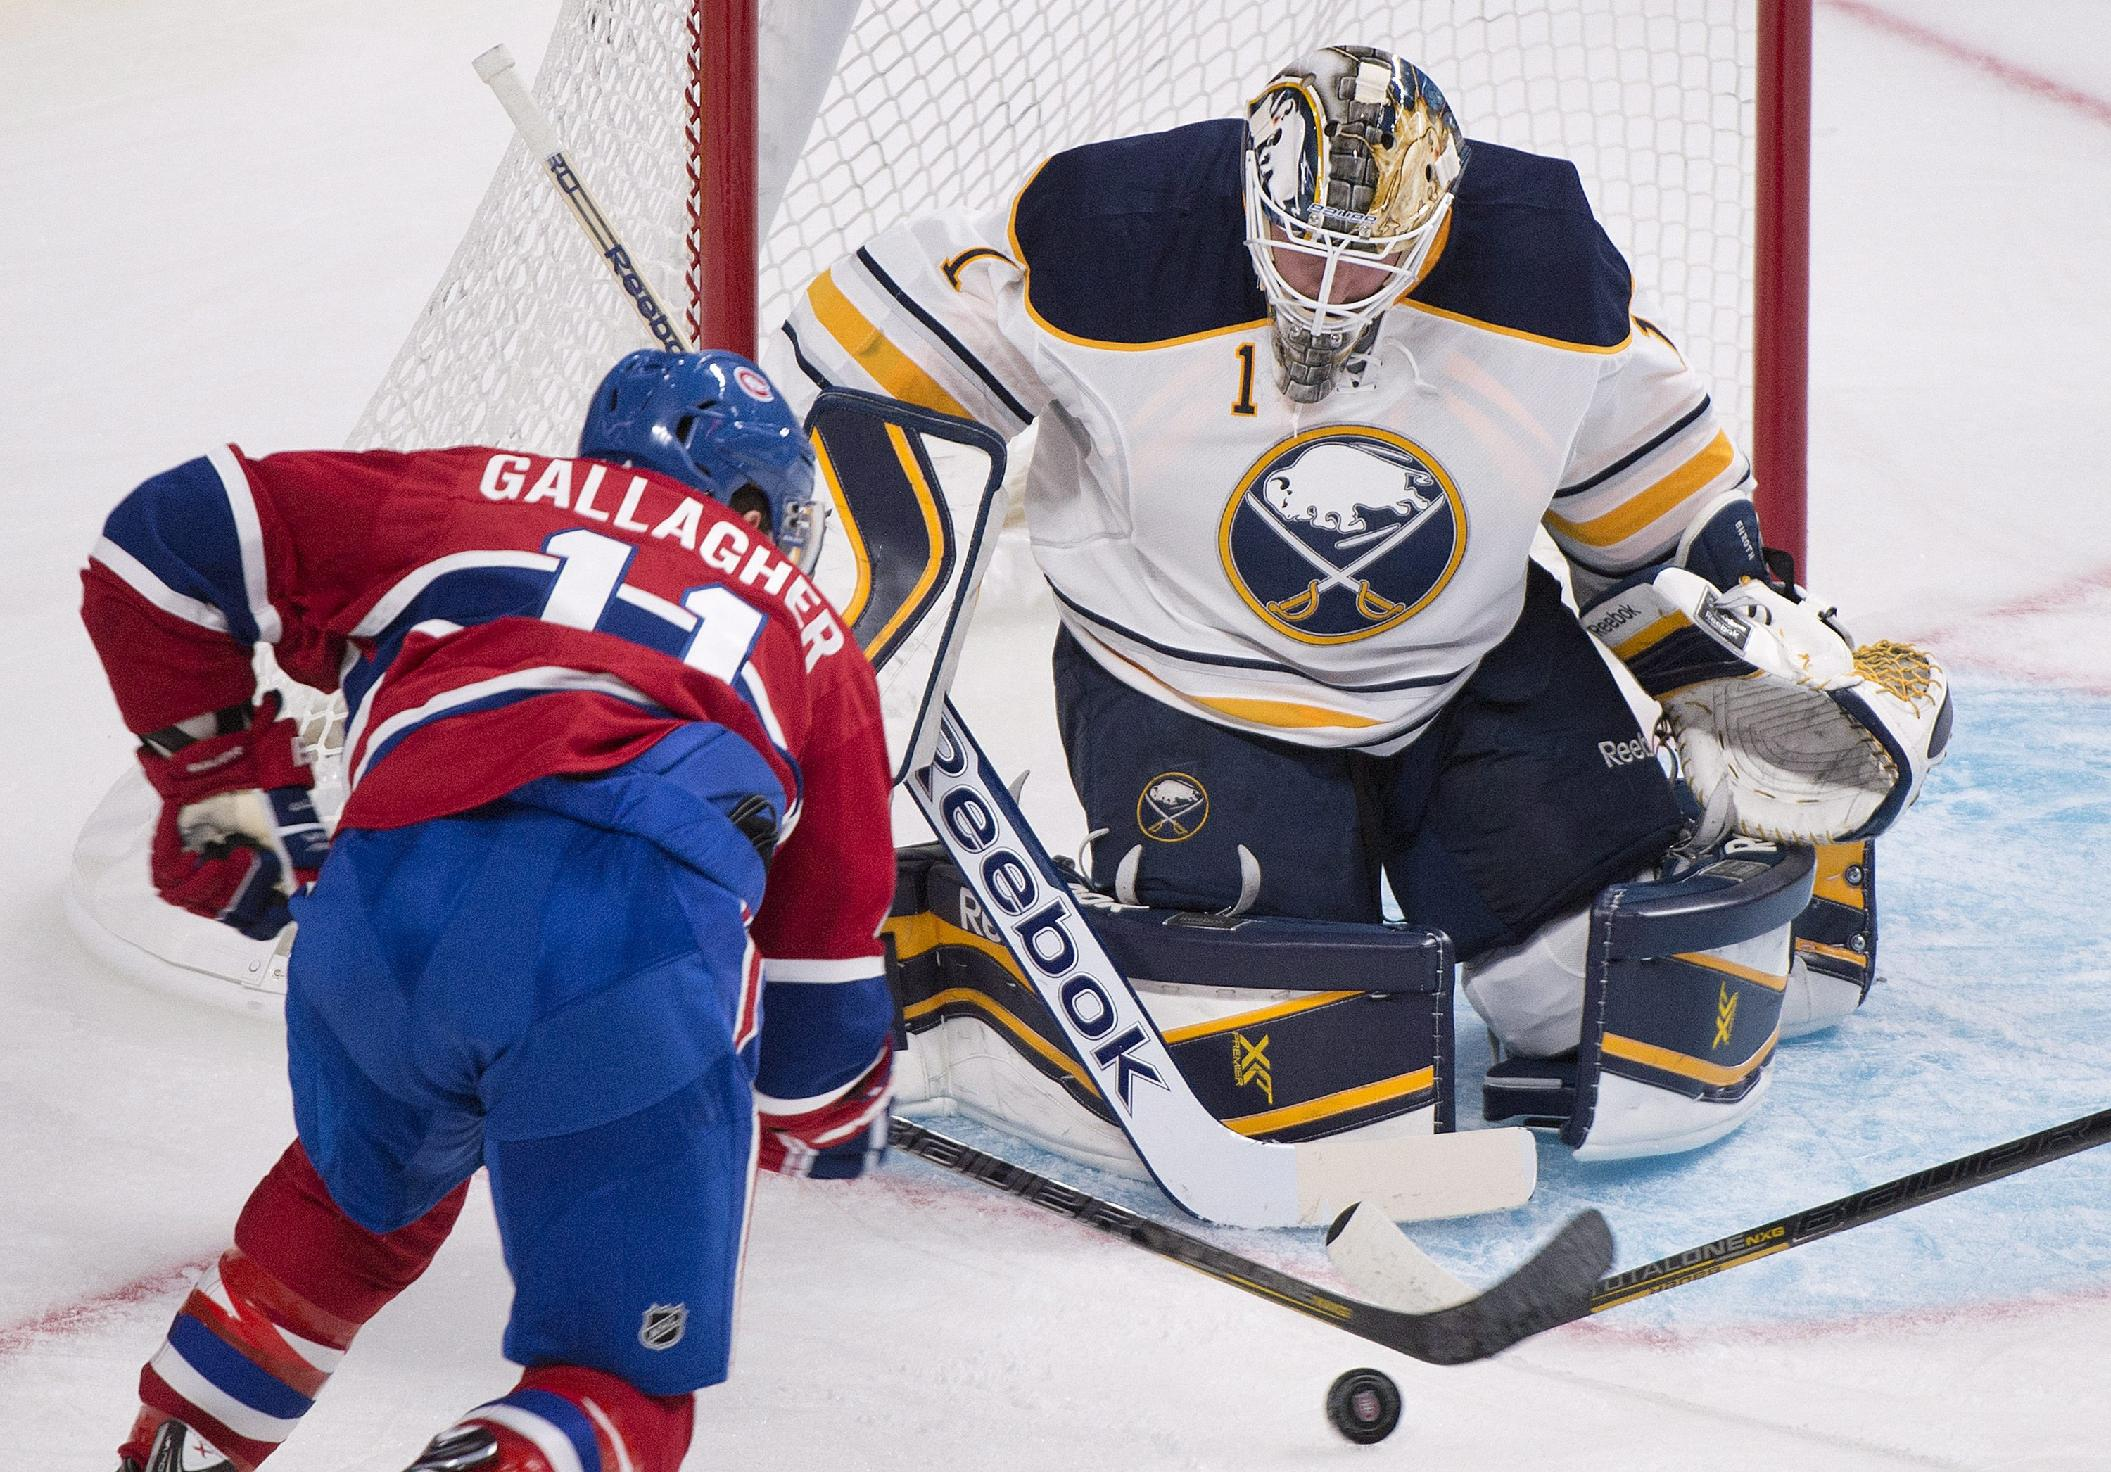 Buffalo Sabres' goaltender Jhonas Enroth, right, makes a save against Montreal Canadiens' Brendan Gallagher during the first period of an NHL pre-season hockey game, Sunday, Sept. 15, 2013 in Montreal